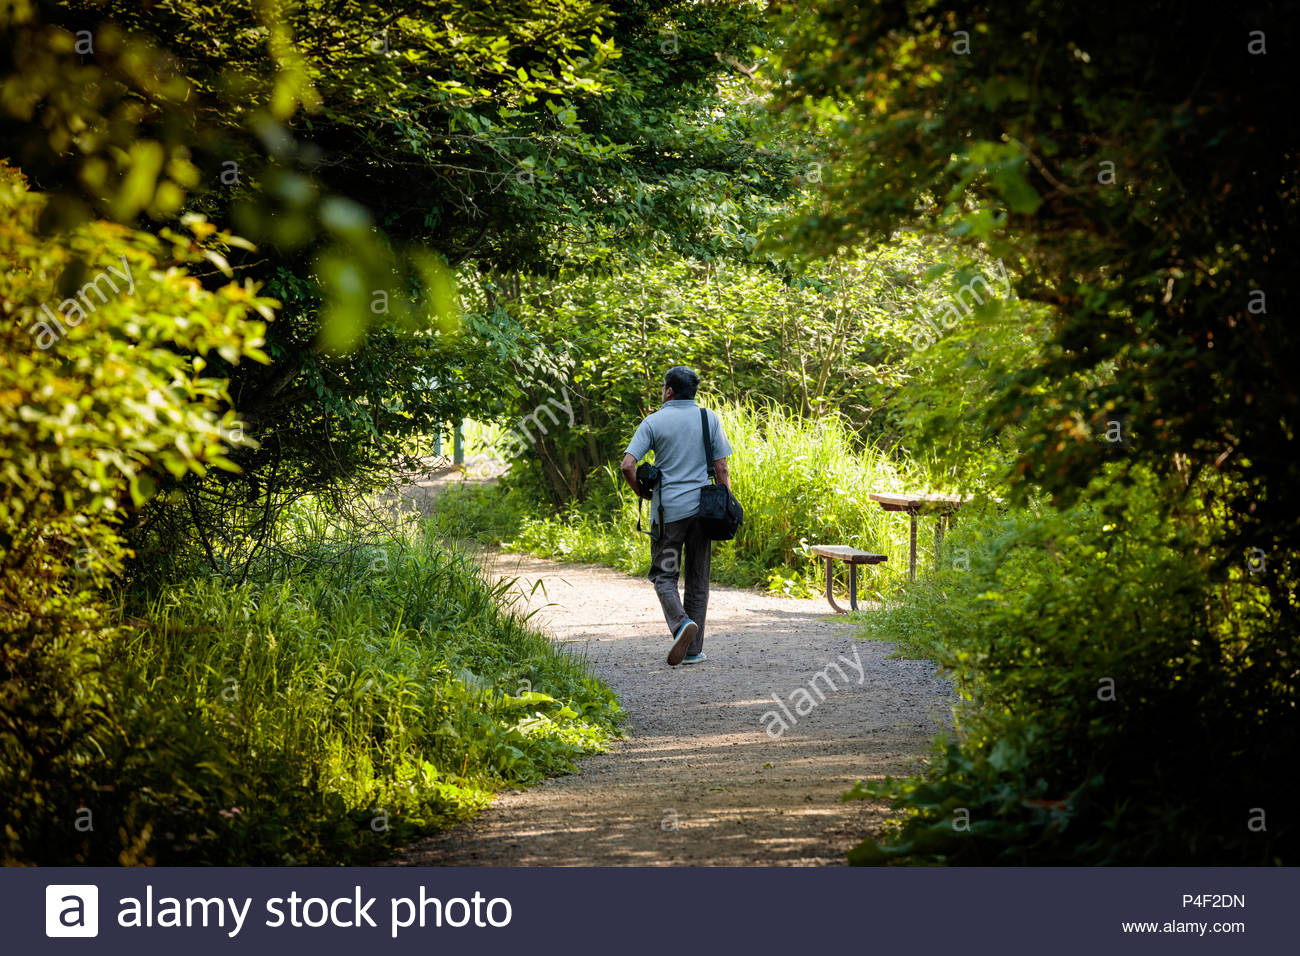 Shinrin-yoku forest bathing forest healing forest therapy shinrin yoku at Lynde Shores Conservation Area in Whitby Ontario Canada - Stock Image